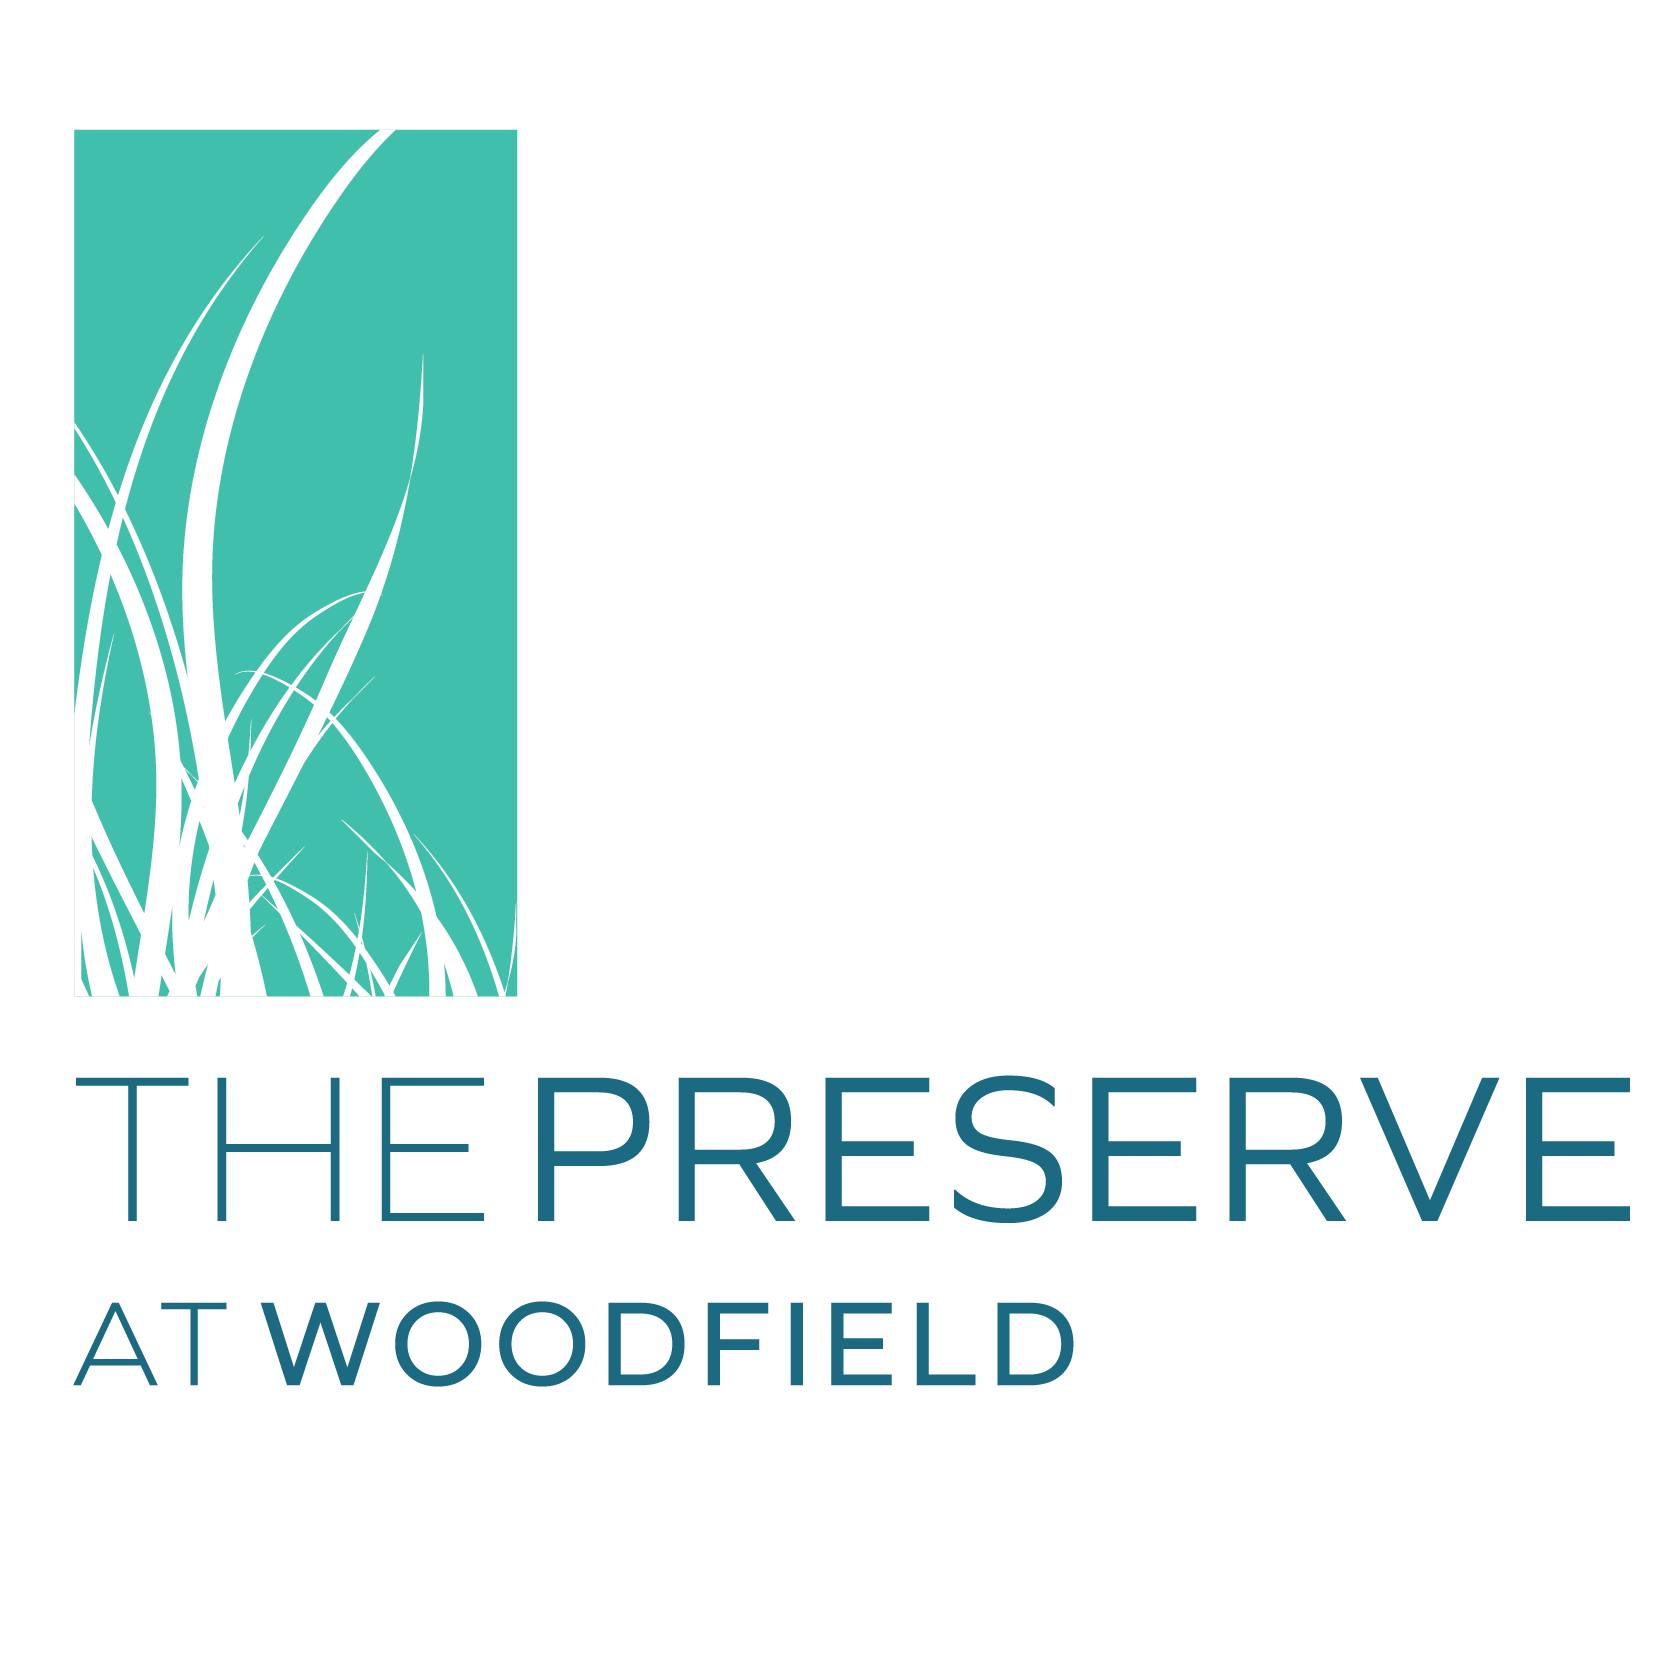 The Preserve at Woodfield